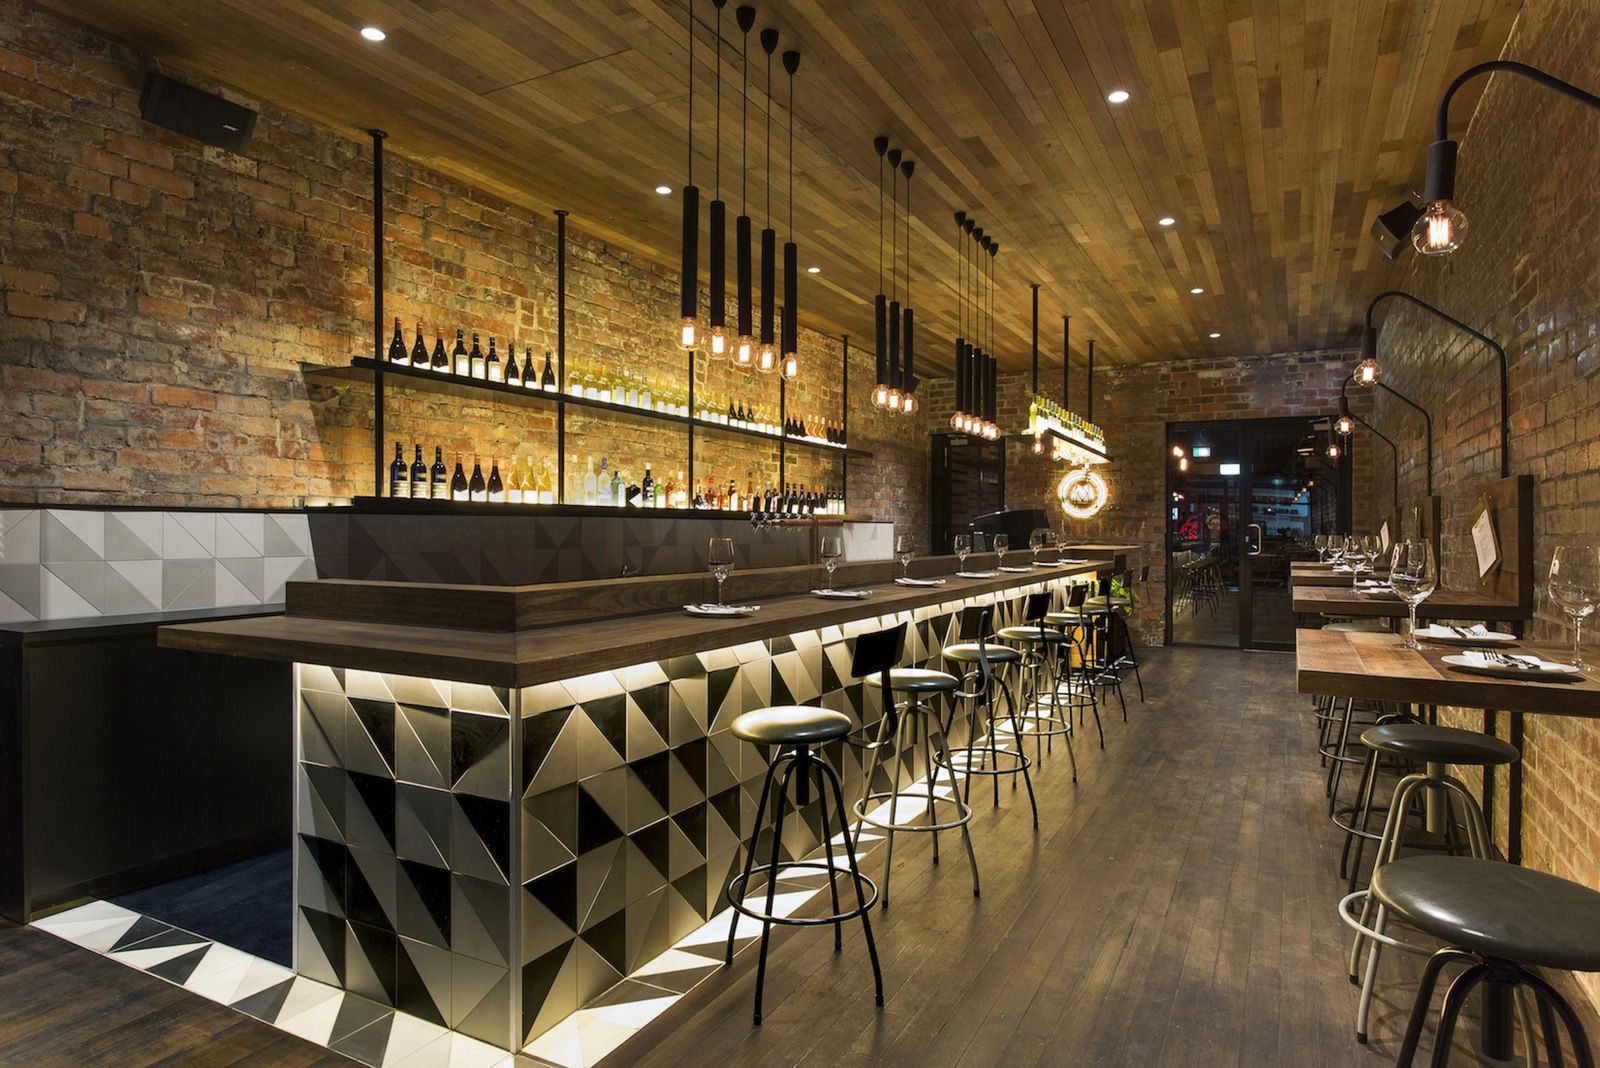 Id es d co pour un bar au look industriel industriel bar et idee deco - Idee deco restaurant ...